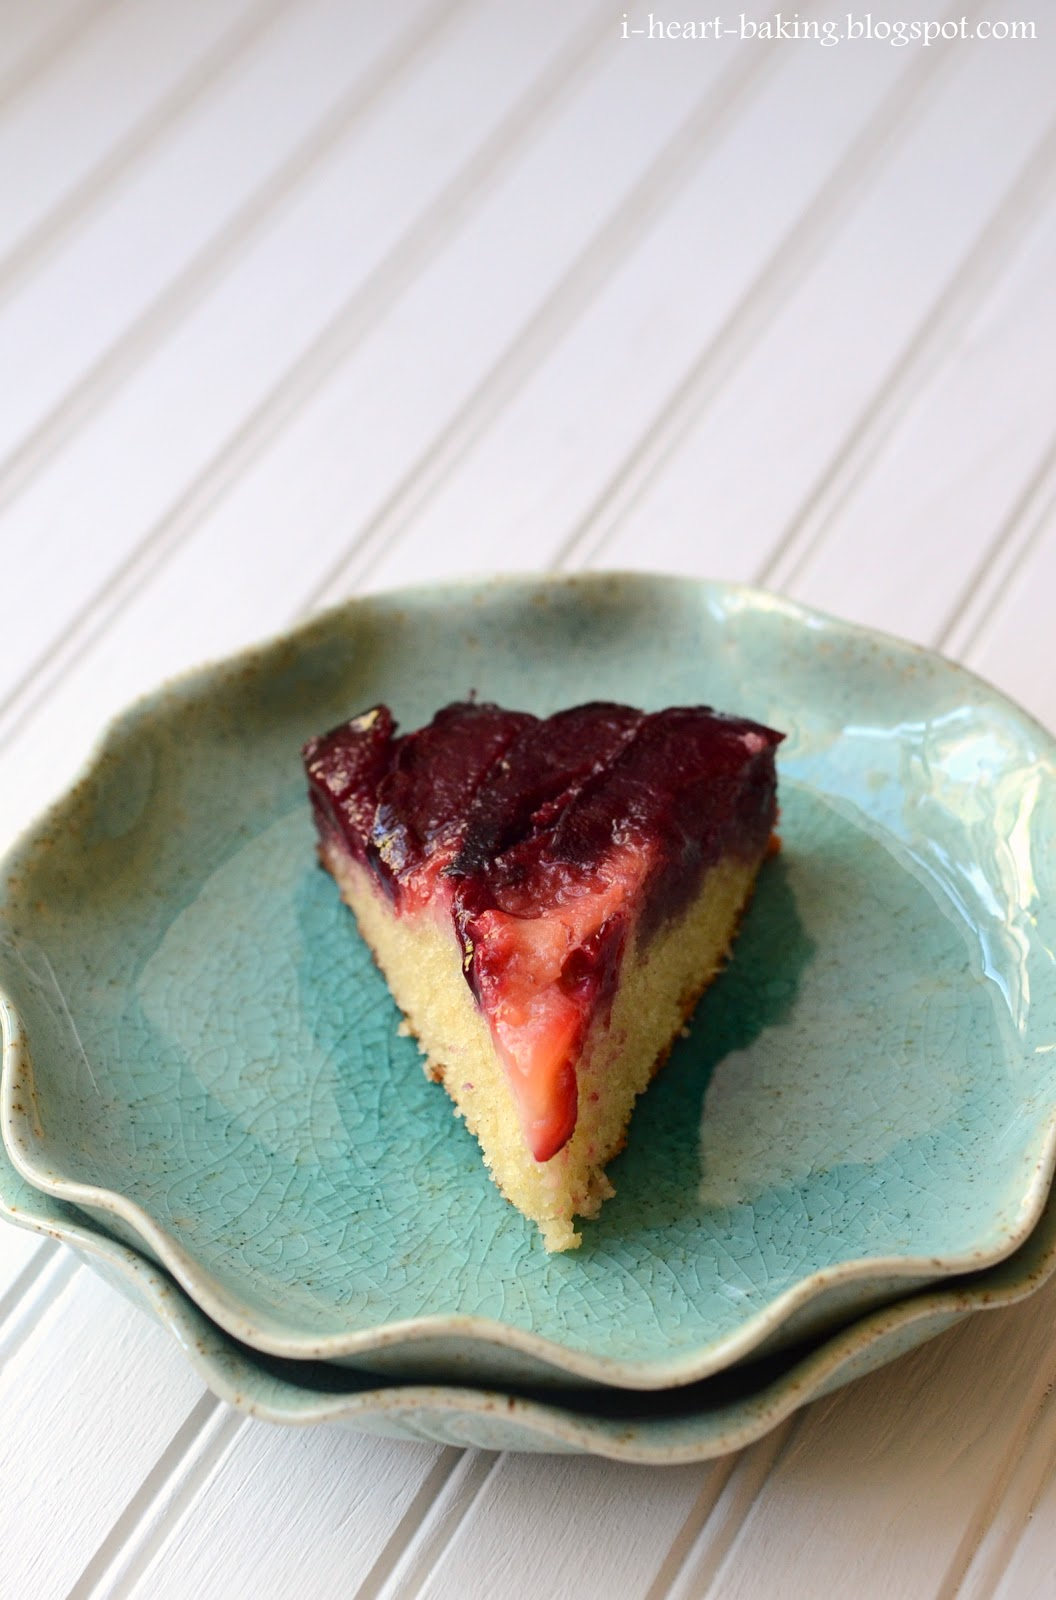 heart baking!: plum upside down cake